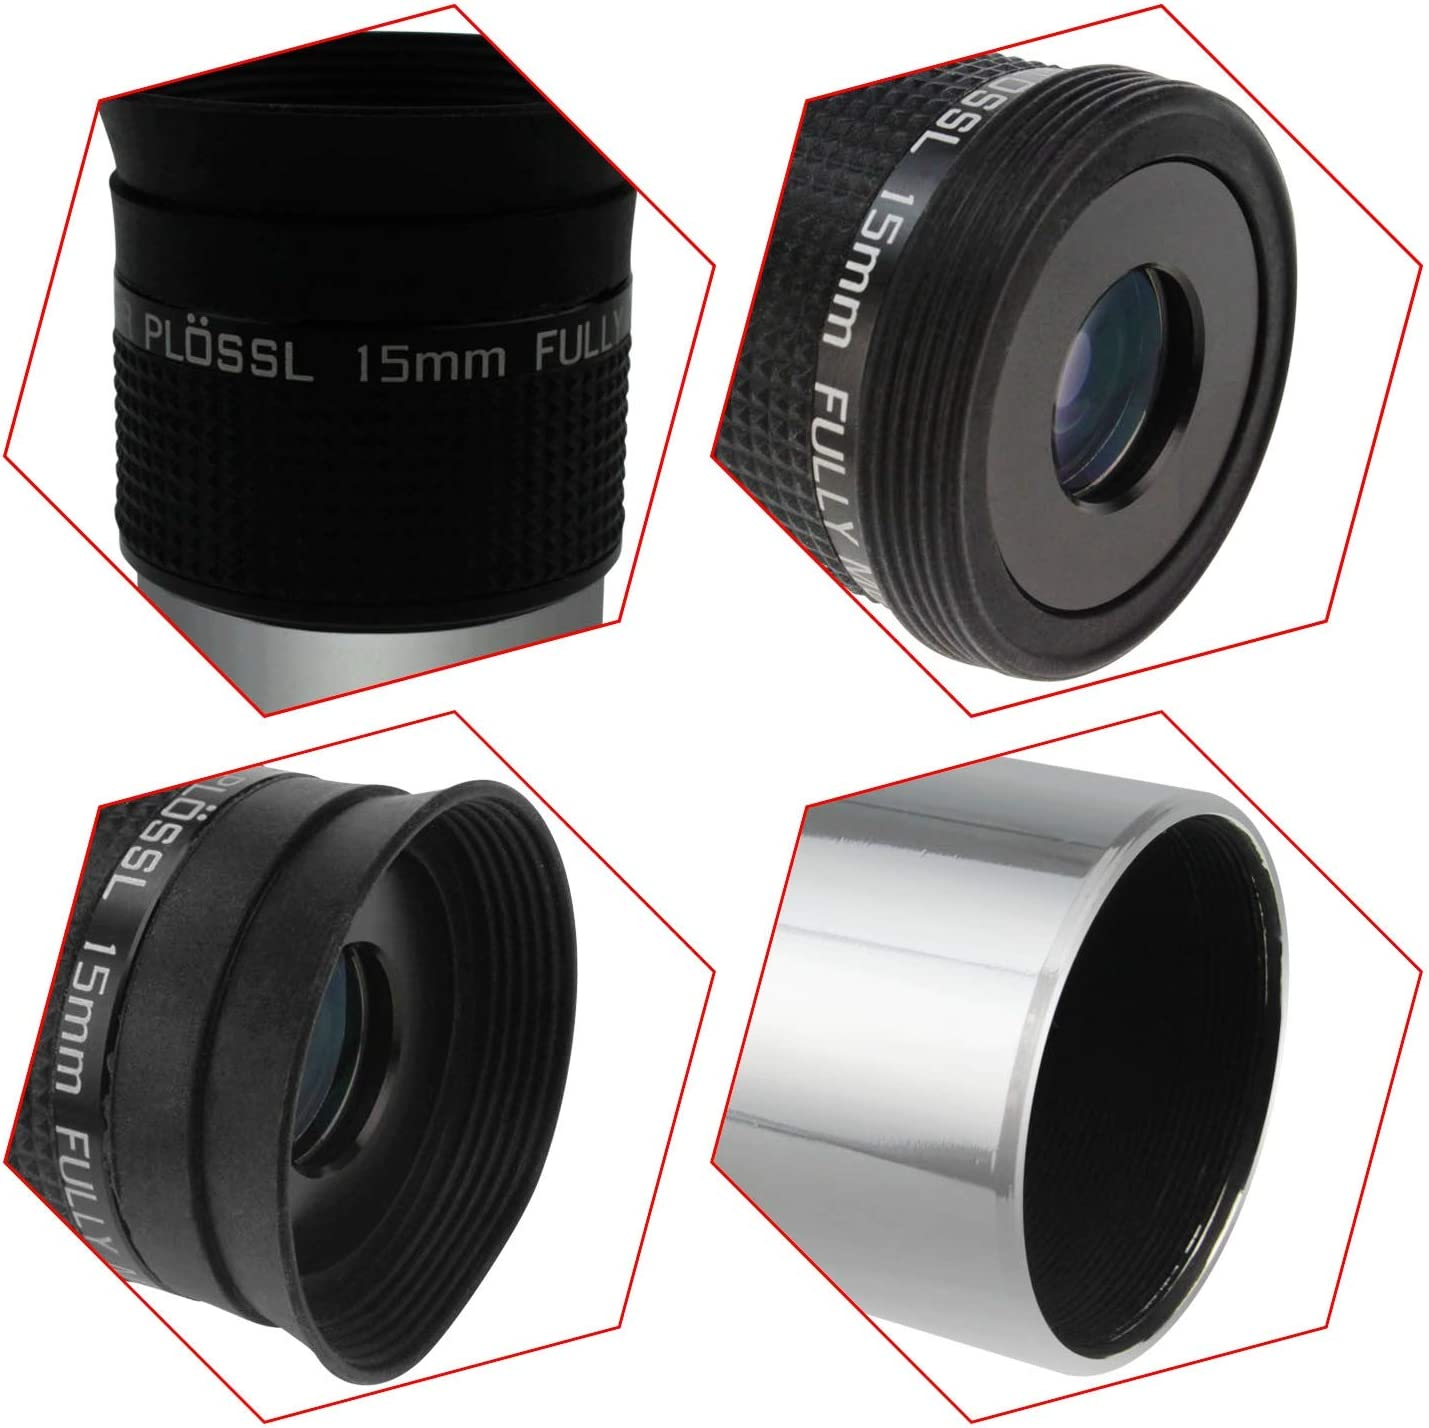 The Most Inexpensive Way of Getting A Sharp Image Astromania 1.25 6.3mm Super Ploessl Eyepiece